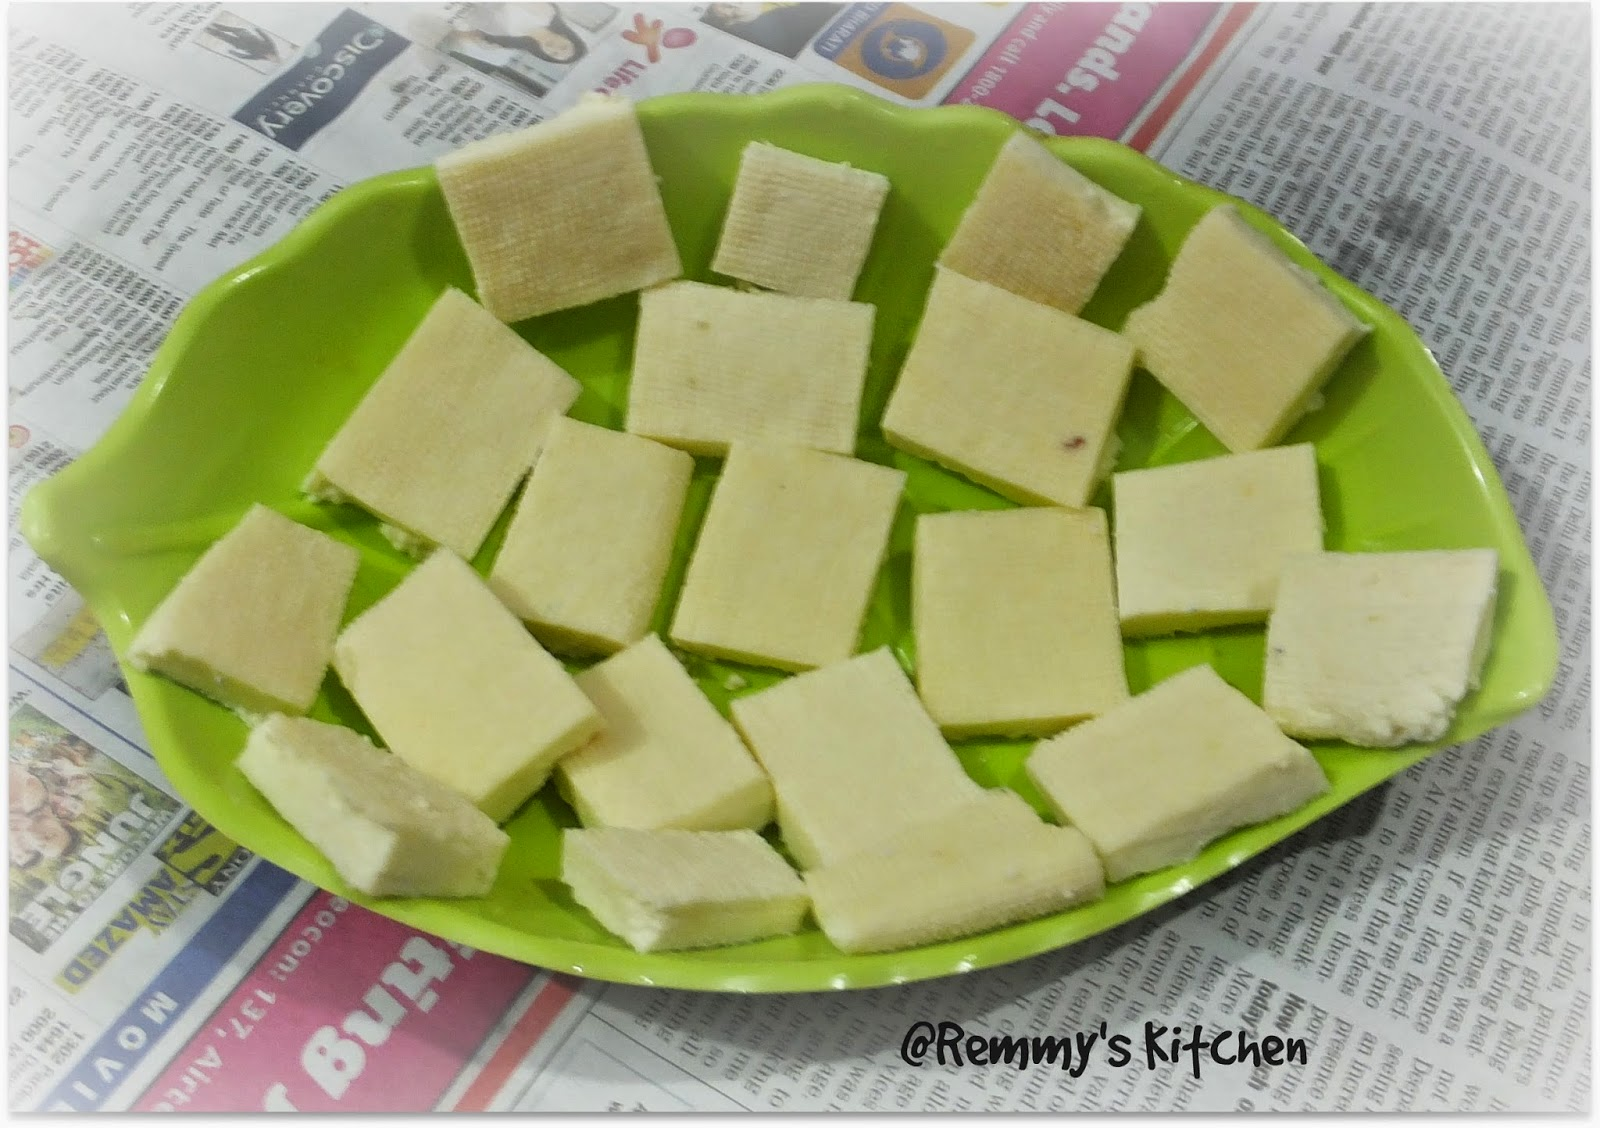 How to make paneer at home (easy method)